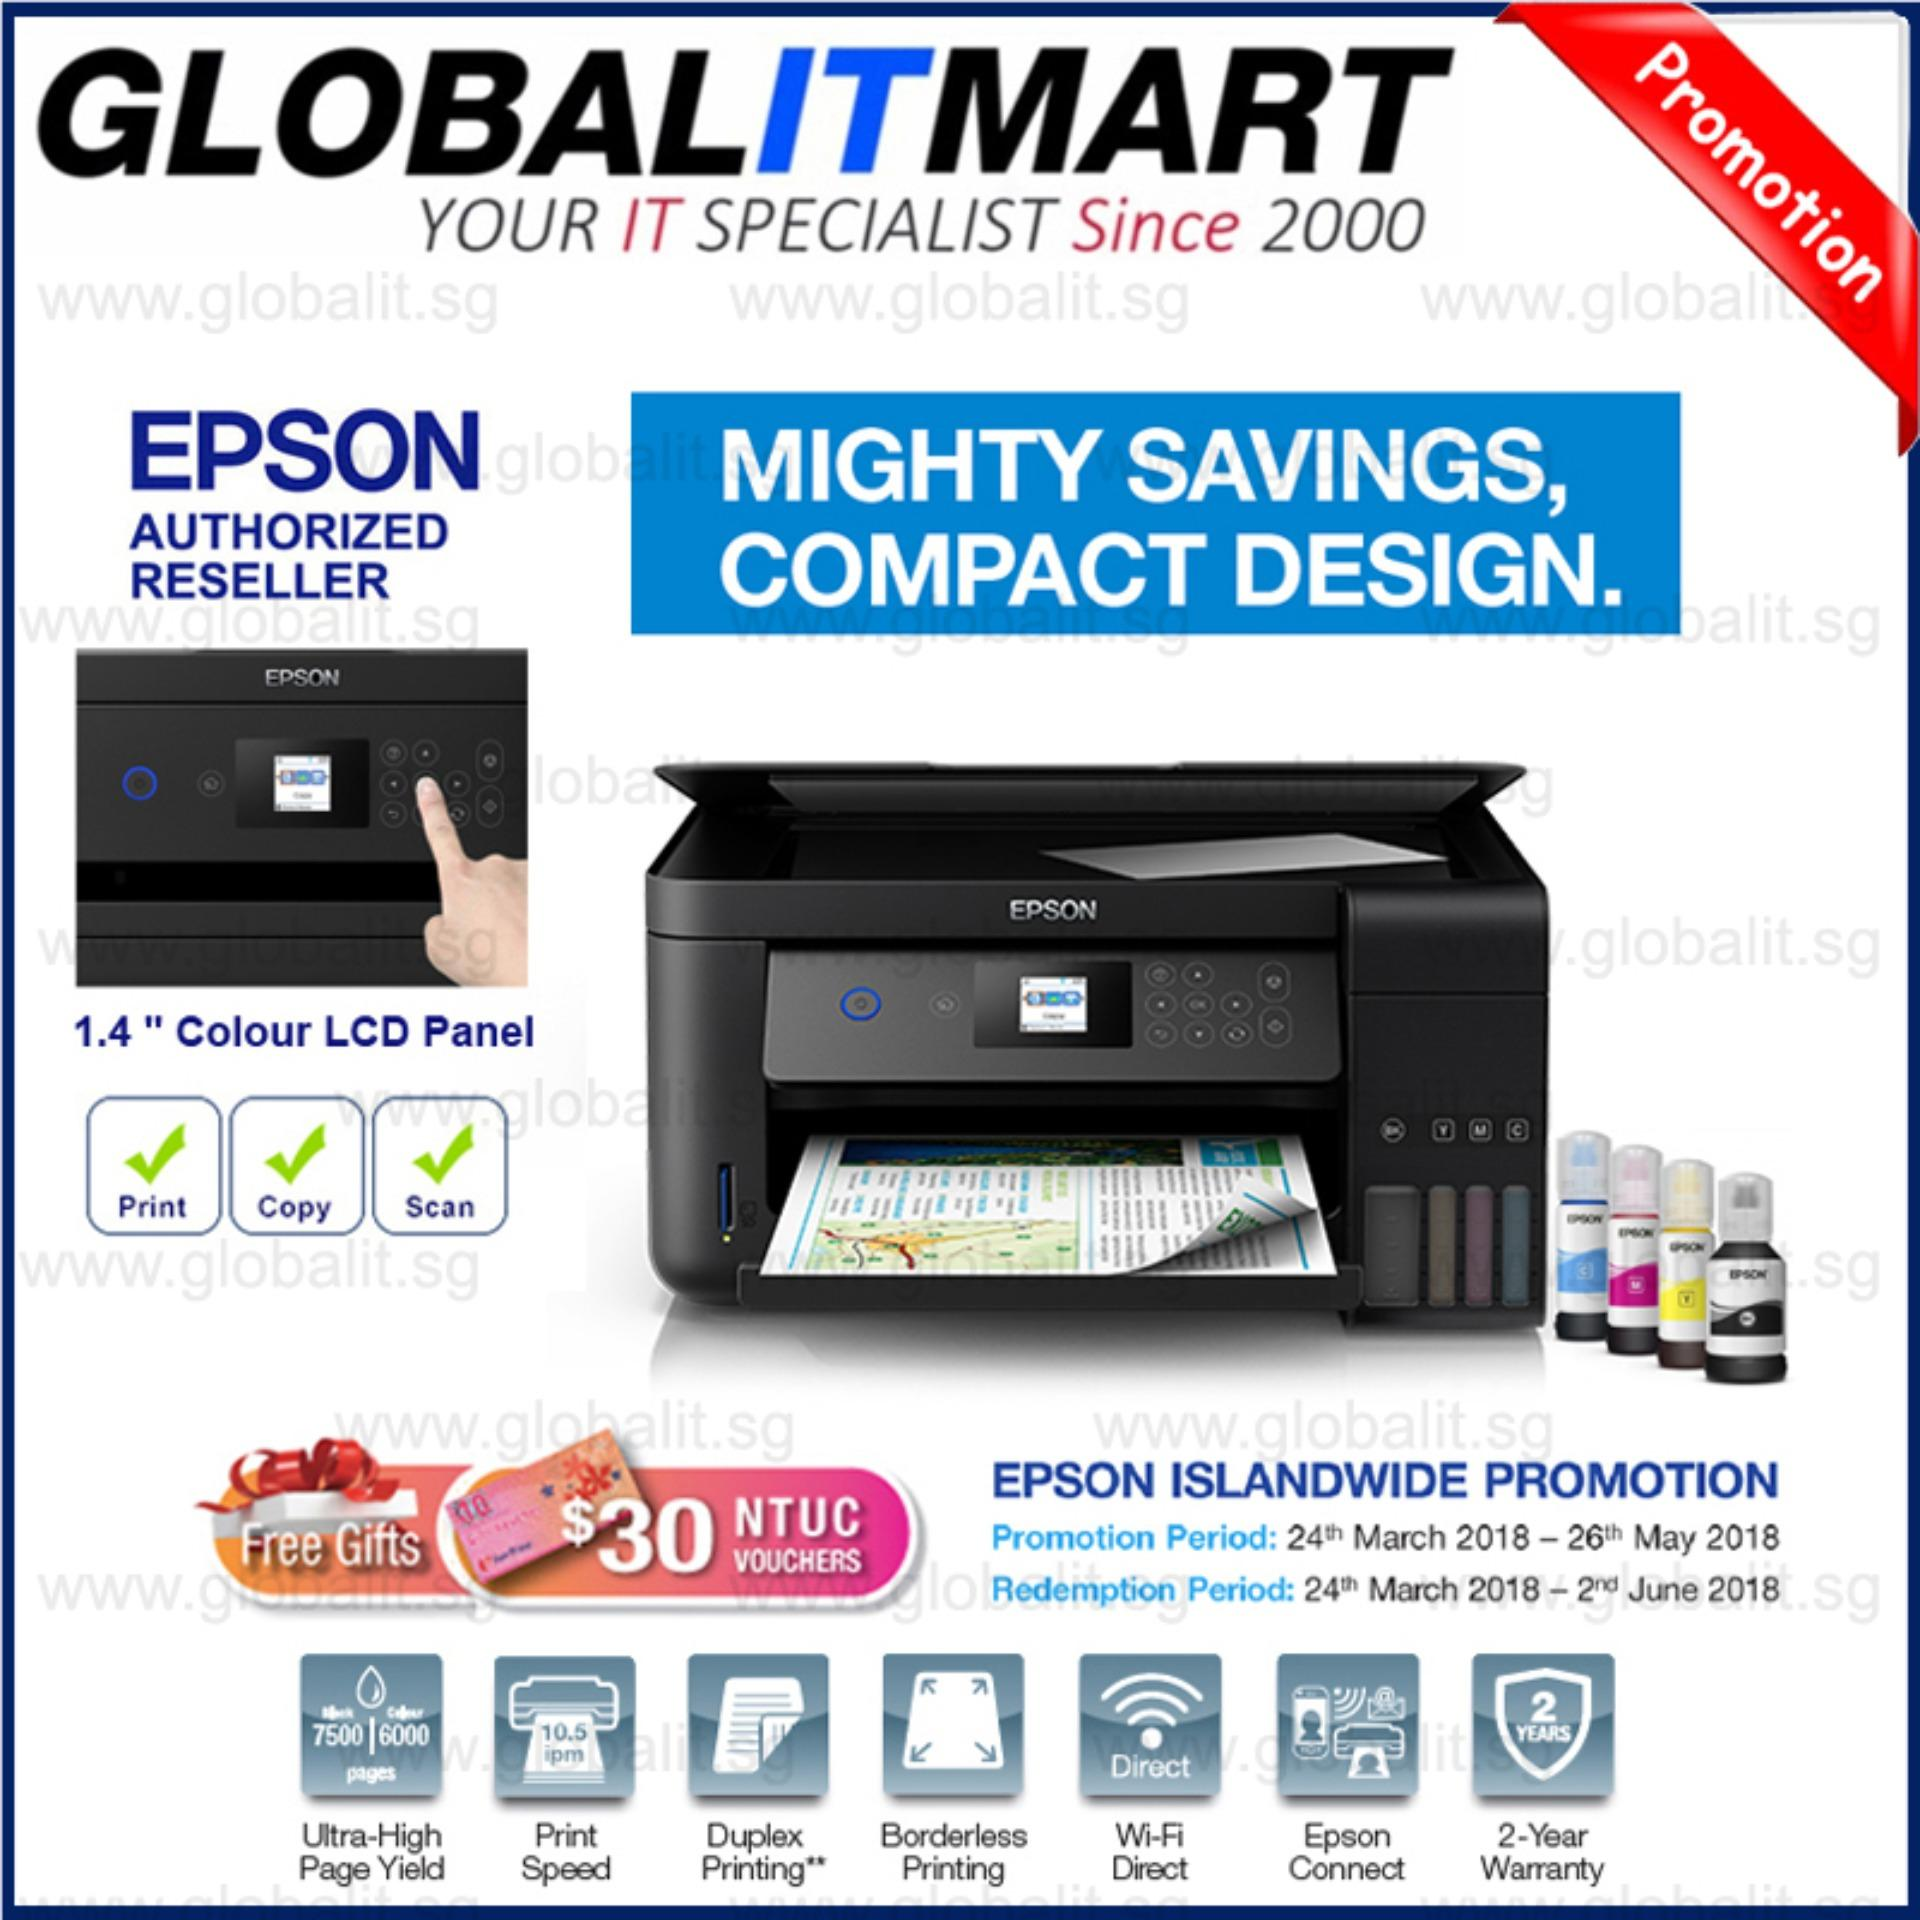 Check For Price Of Canon Pixma G3010 Refillable Ink Tank Wireless G3000 All In One Wi Fi Printer Epson L4160 Duplex